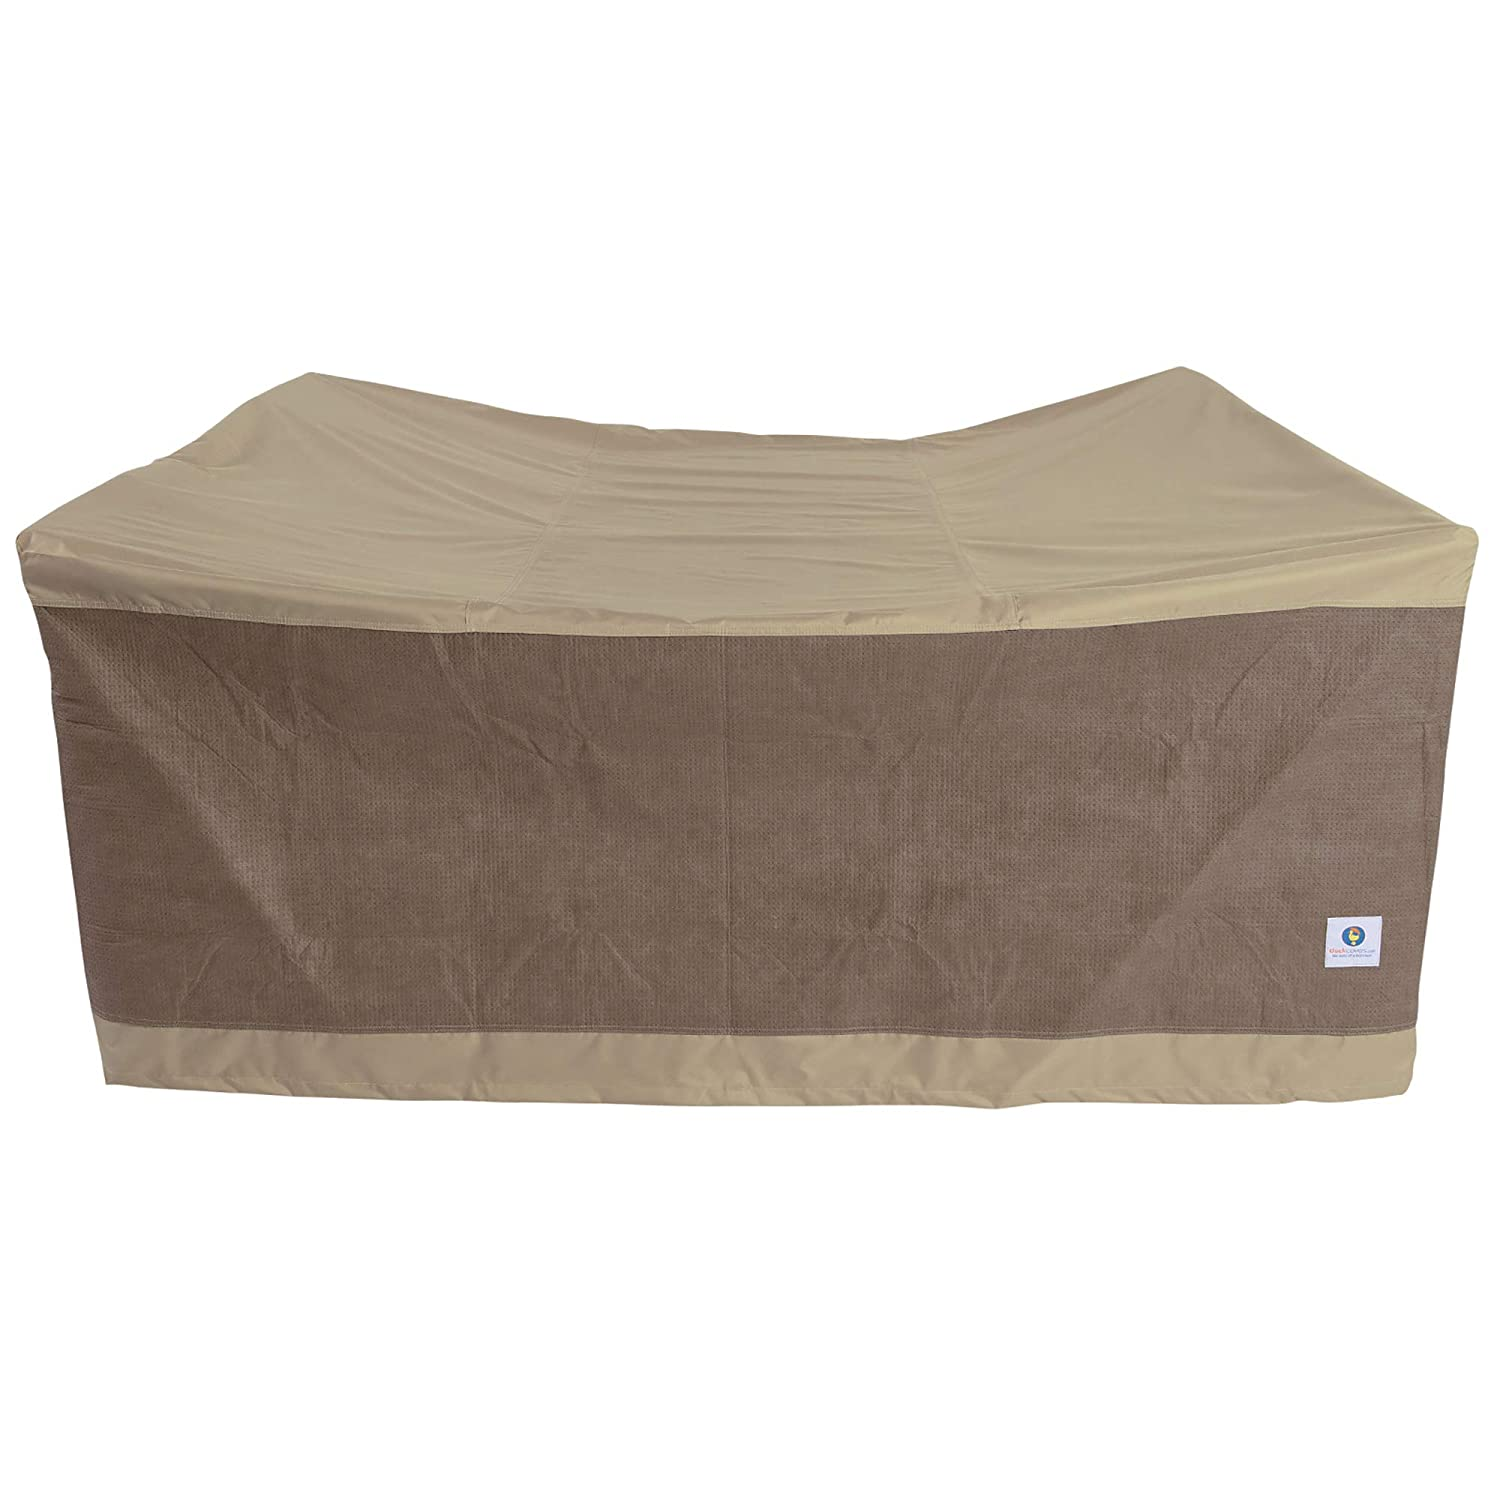 Duck Covers Elegant Square Patio Table & Cover, Fits Outdoor and Chair Sets 76 Long LTS07676